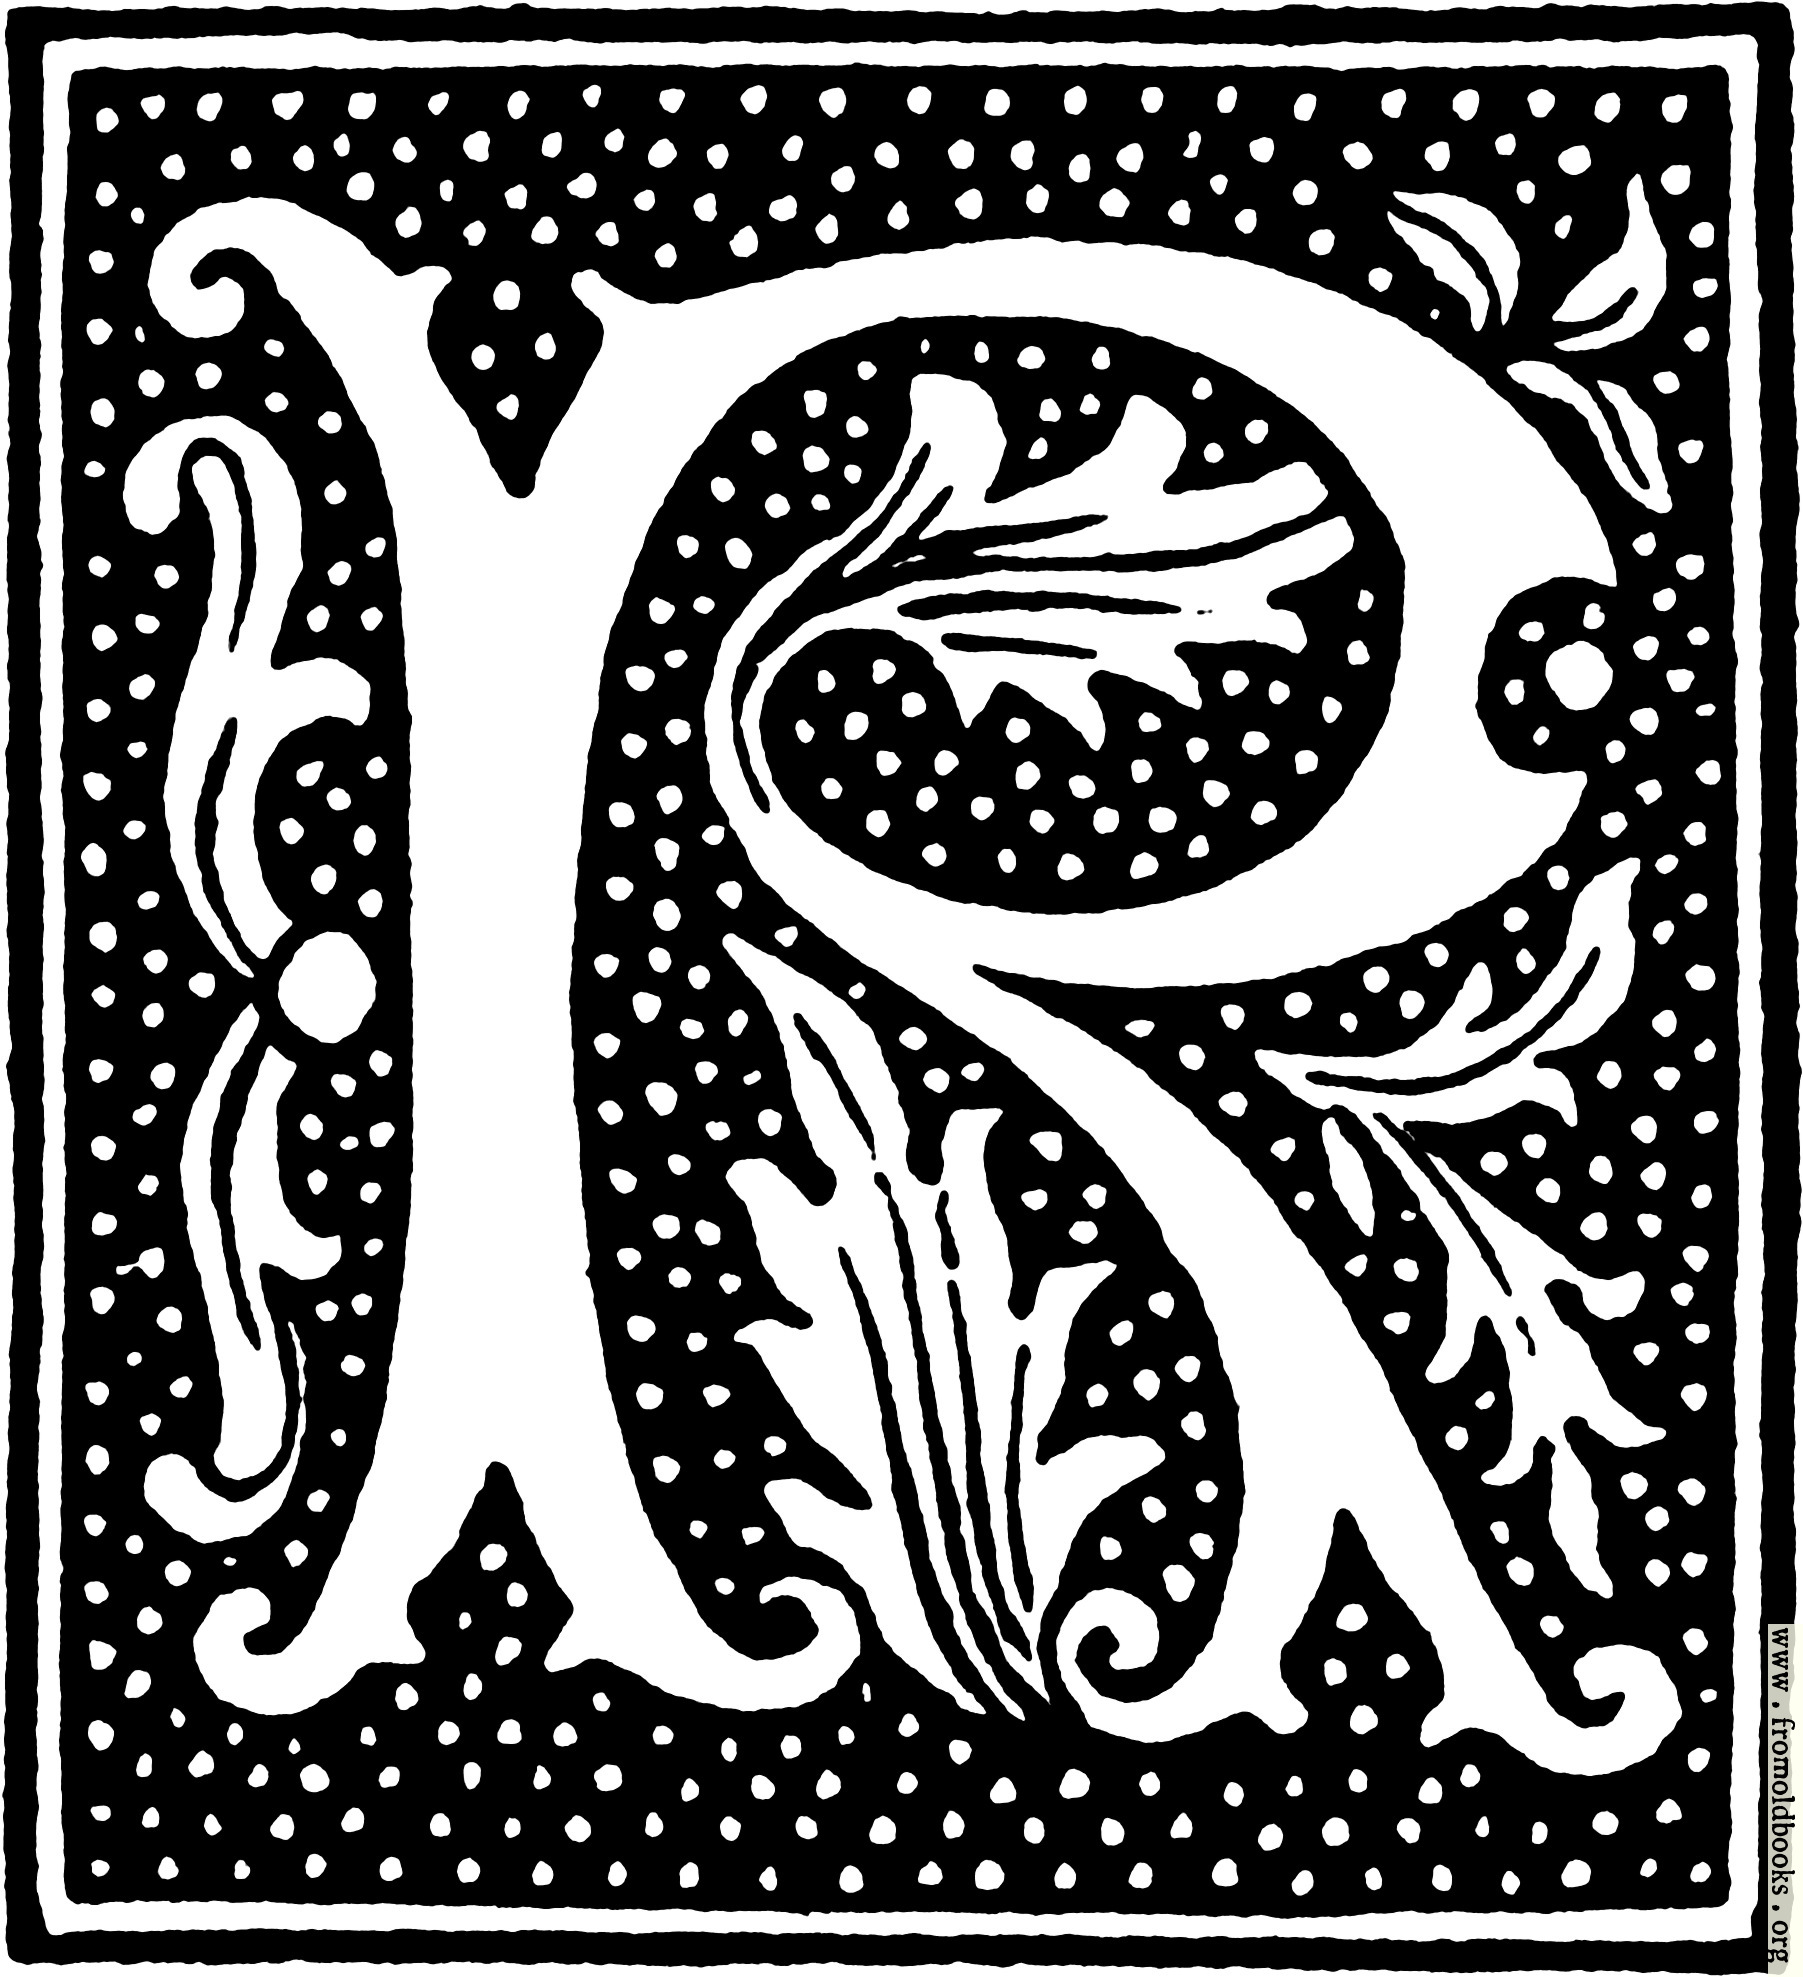 Clipart initial letter r from beginning of the 16th century 456x500 78k jpg free download thecheapjerseys Image collections